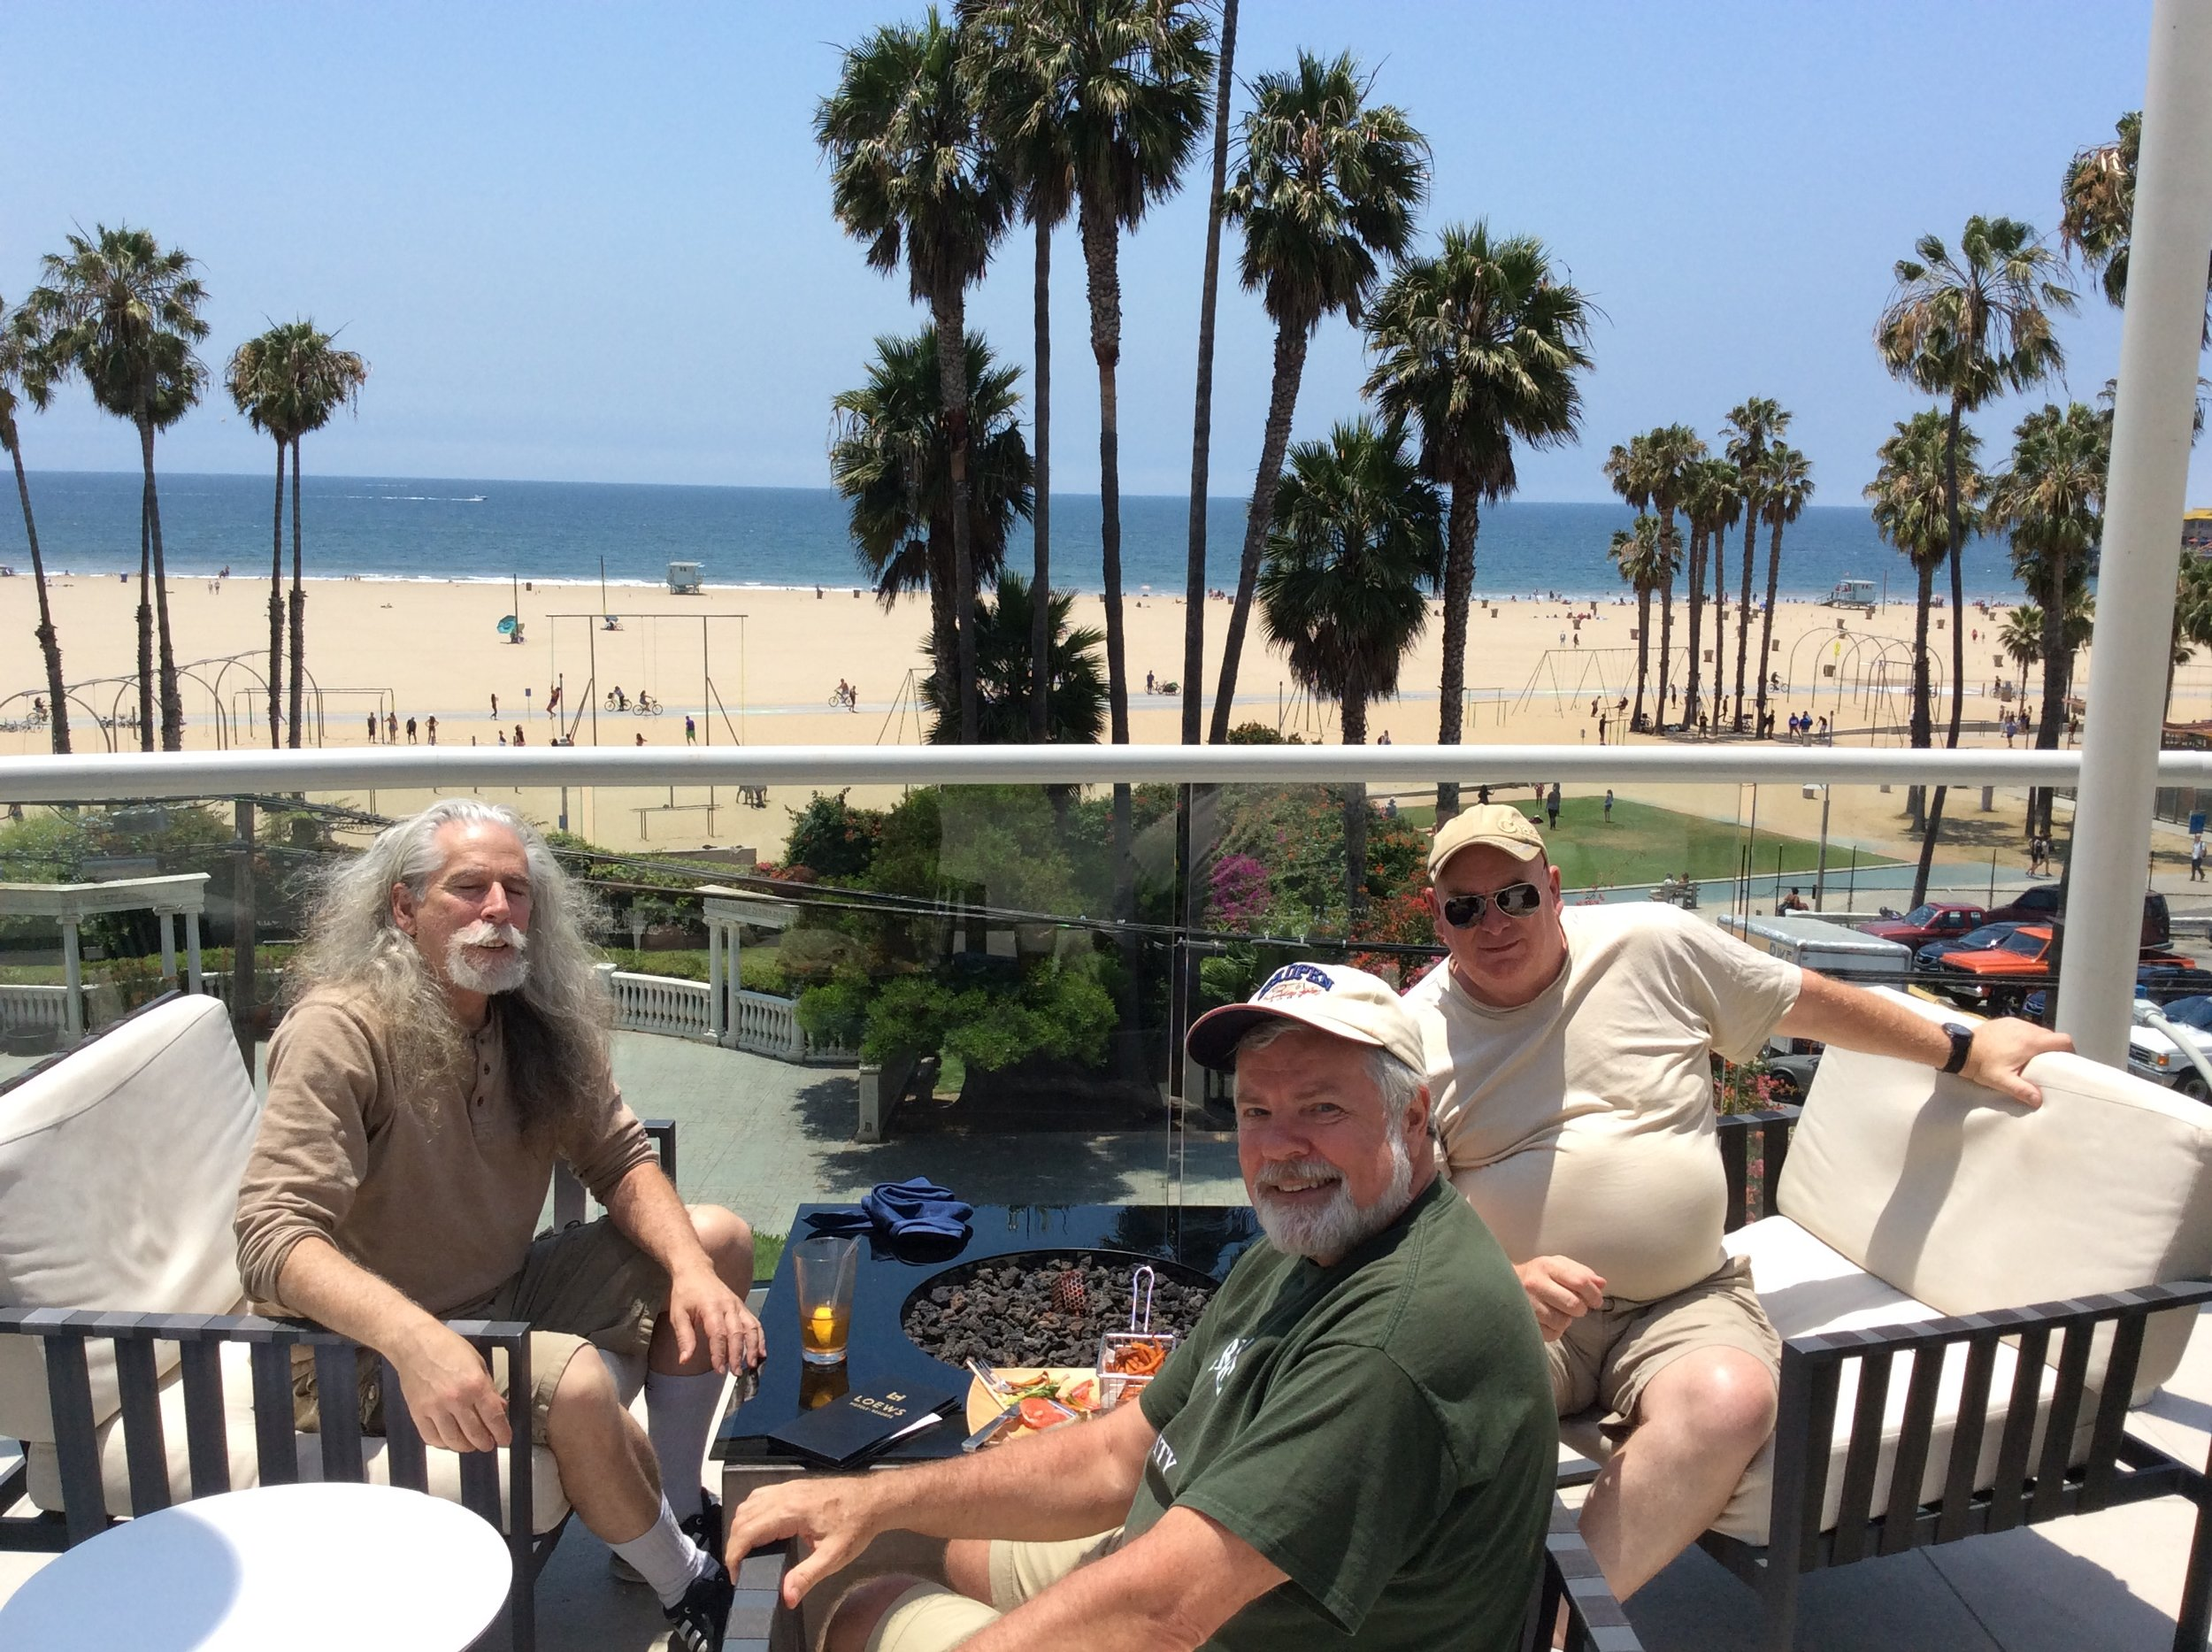 Outside dining at Loew's in Santa Monica, CA